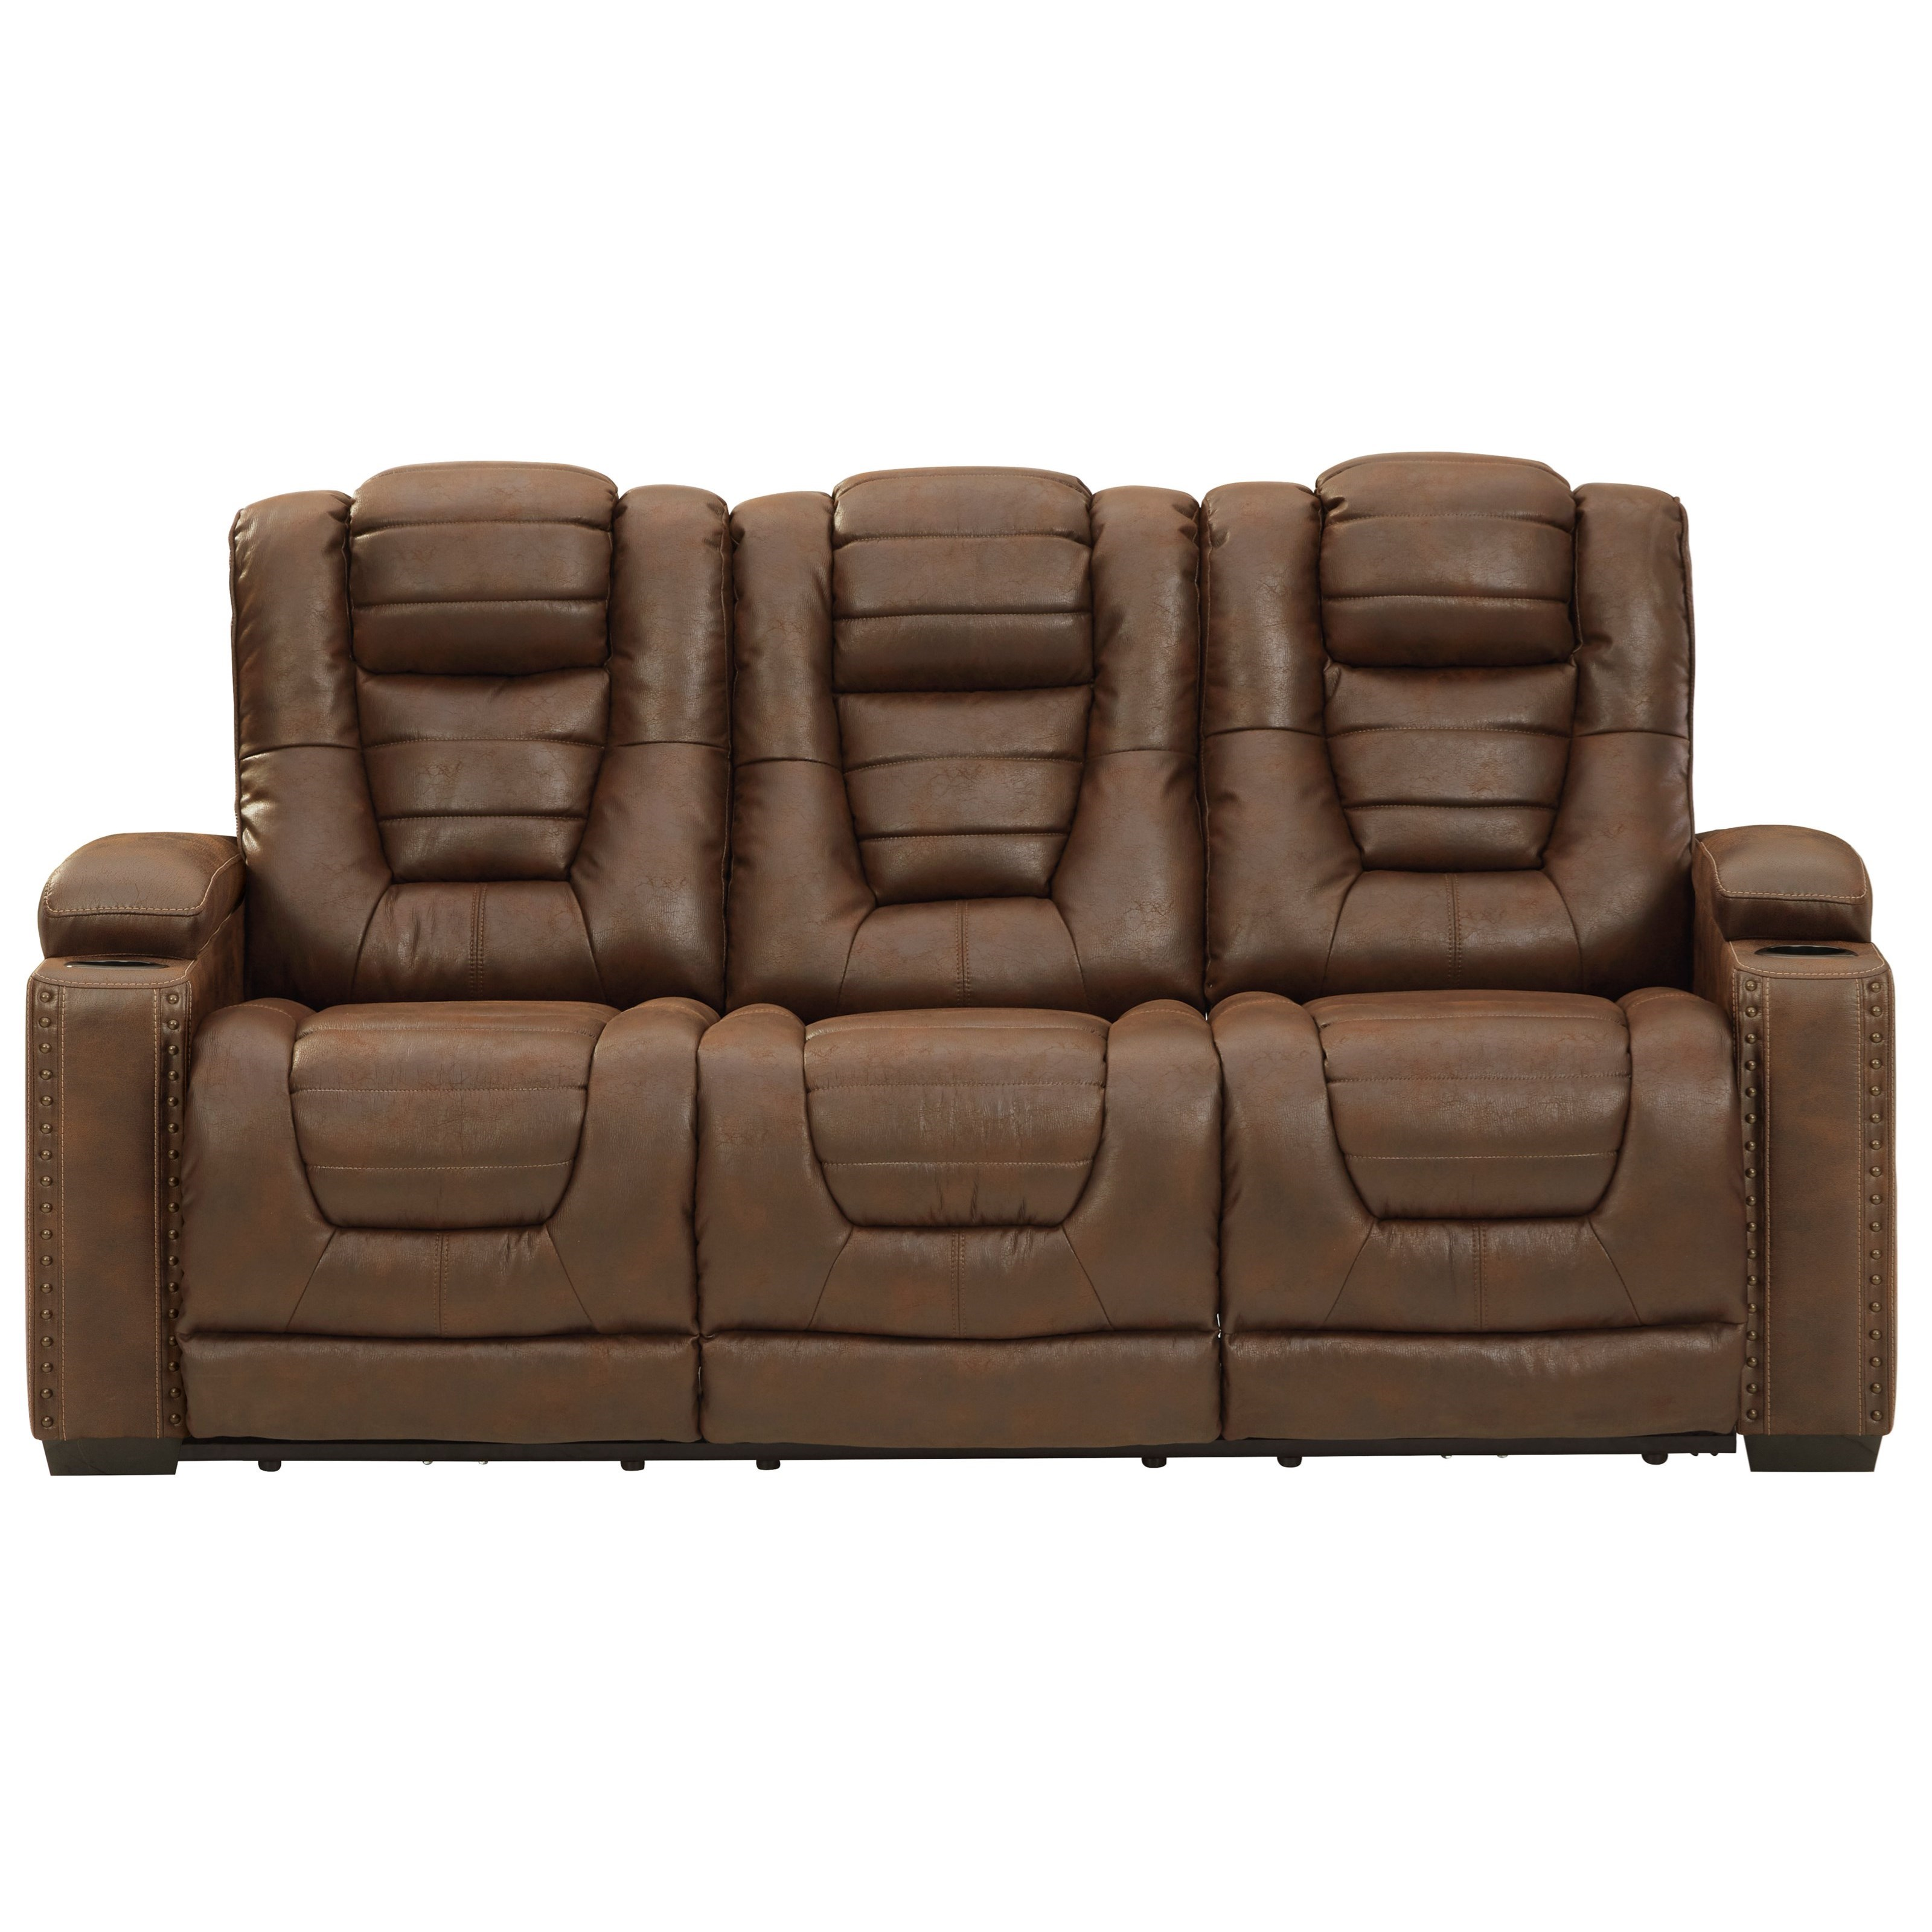 Owner's Box Power Reclining Sofa w/ Adjustable Headrests by Ashley (Signature Design) at Johnny Janosik